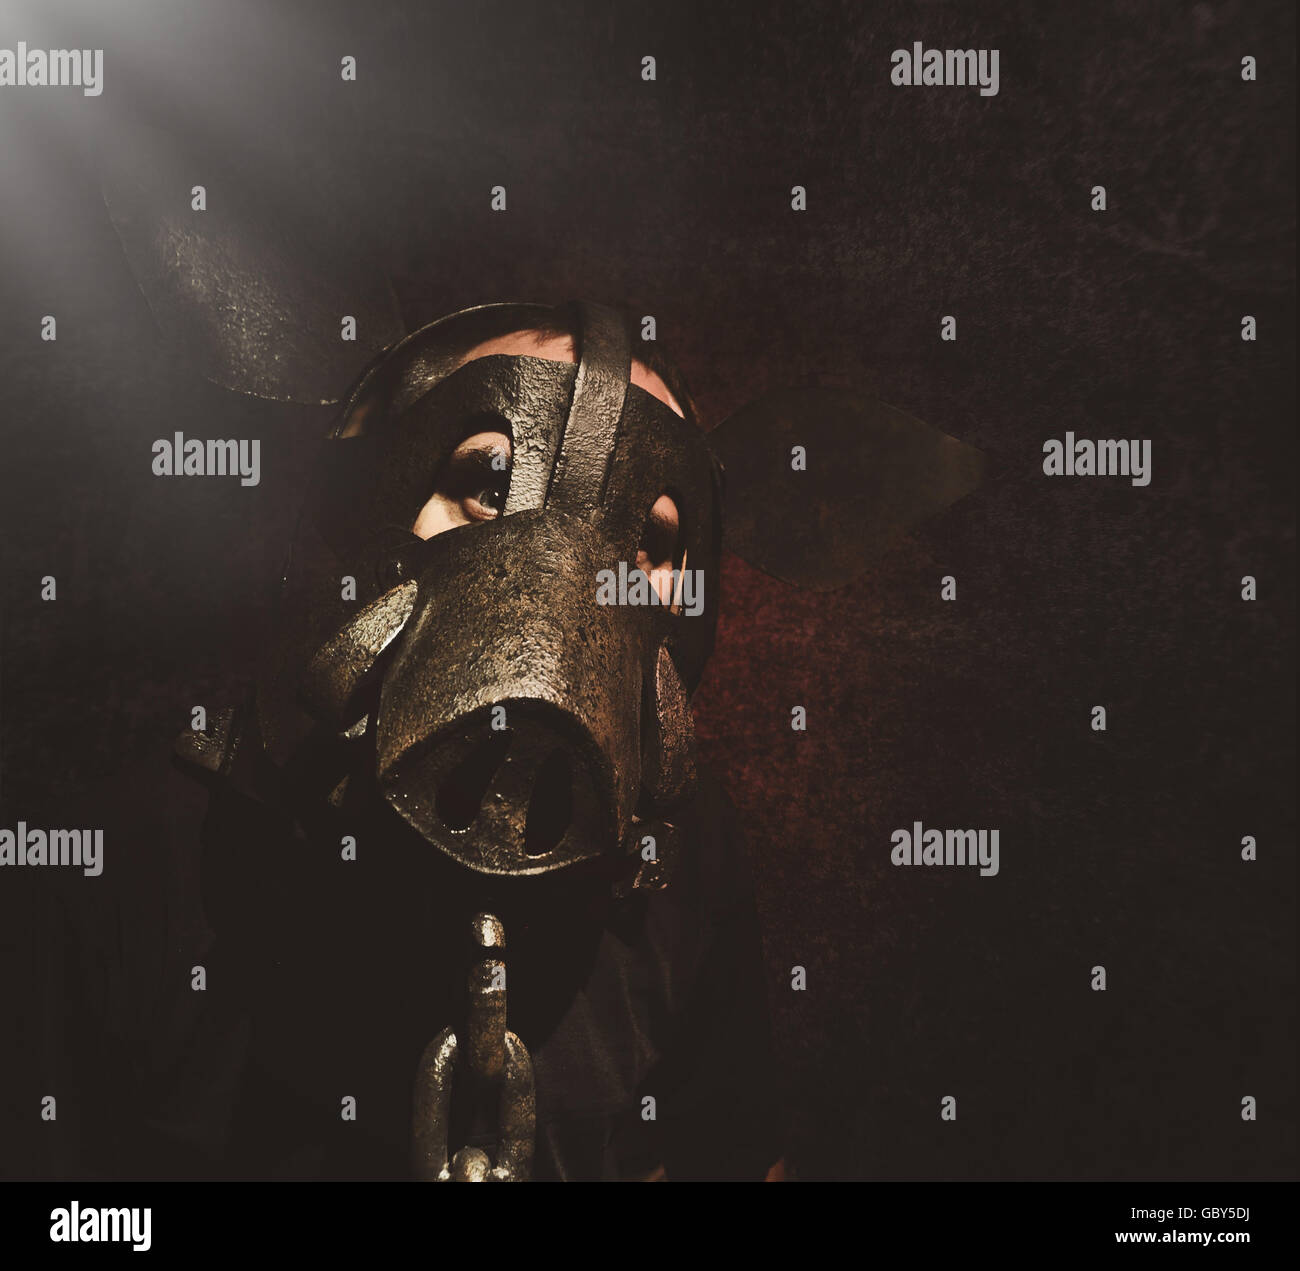 A crazy scary man is wearing a metal pig mask with a chain on a black background for a fear or halloween concept - Stock Image